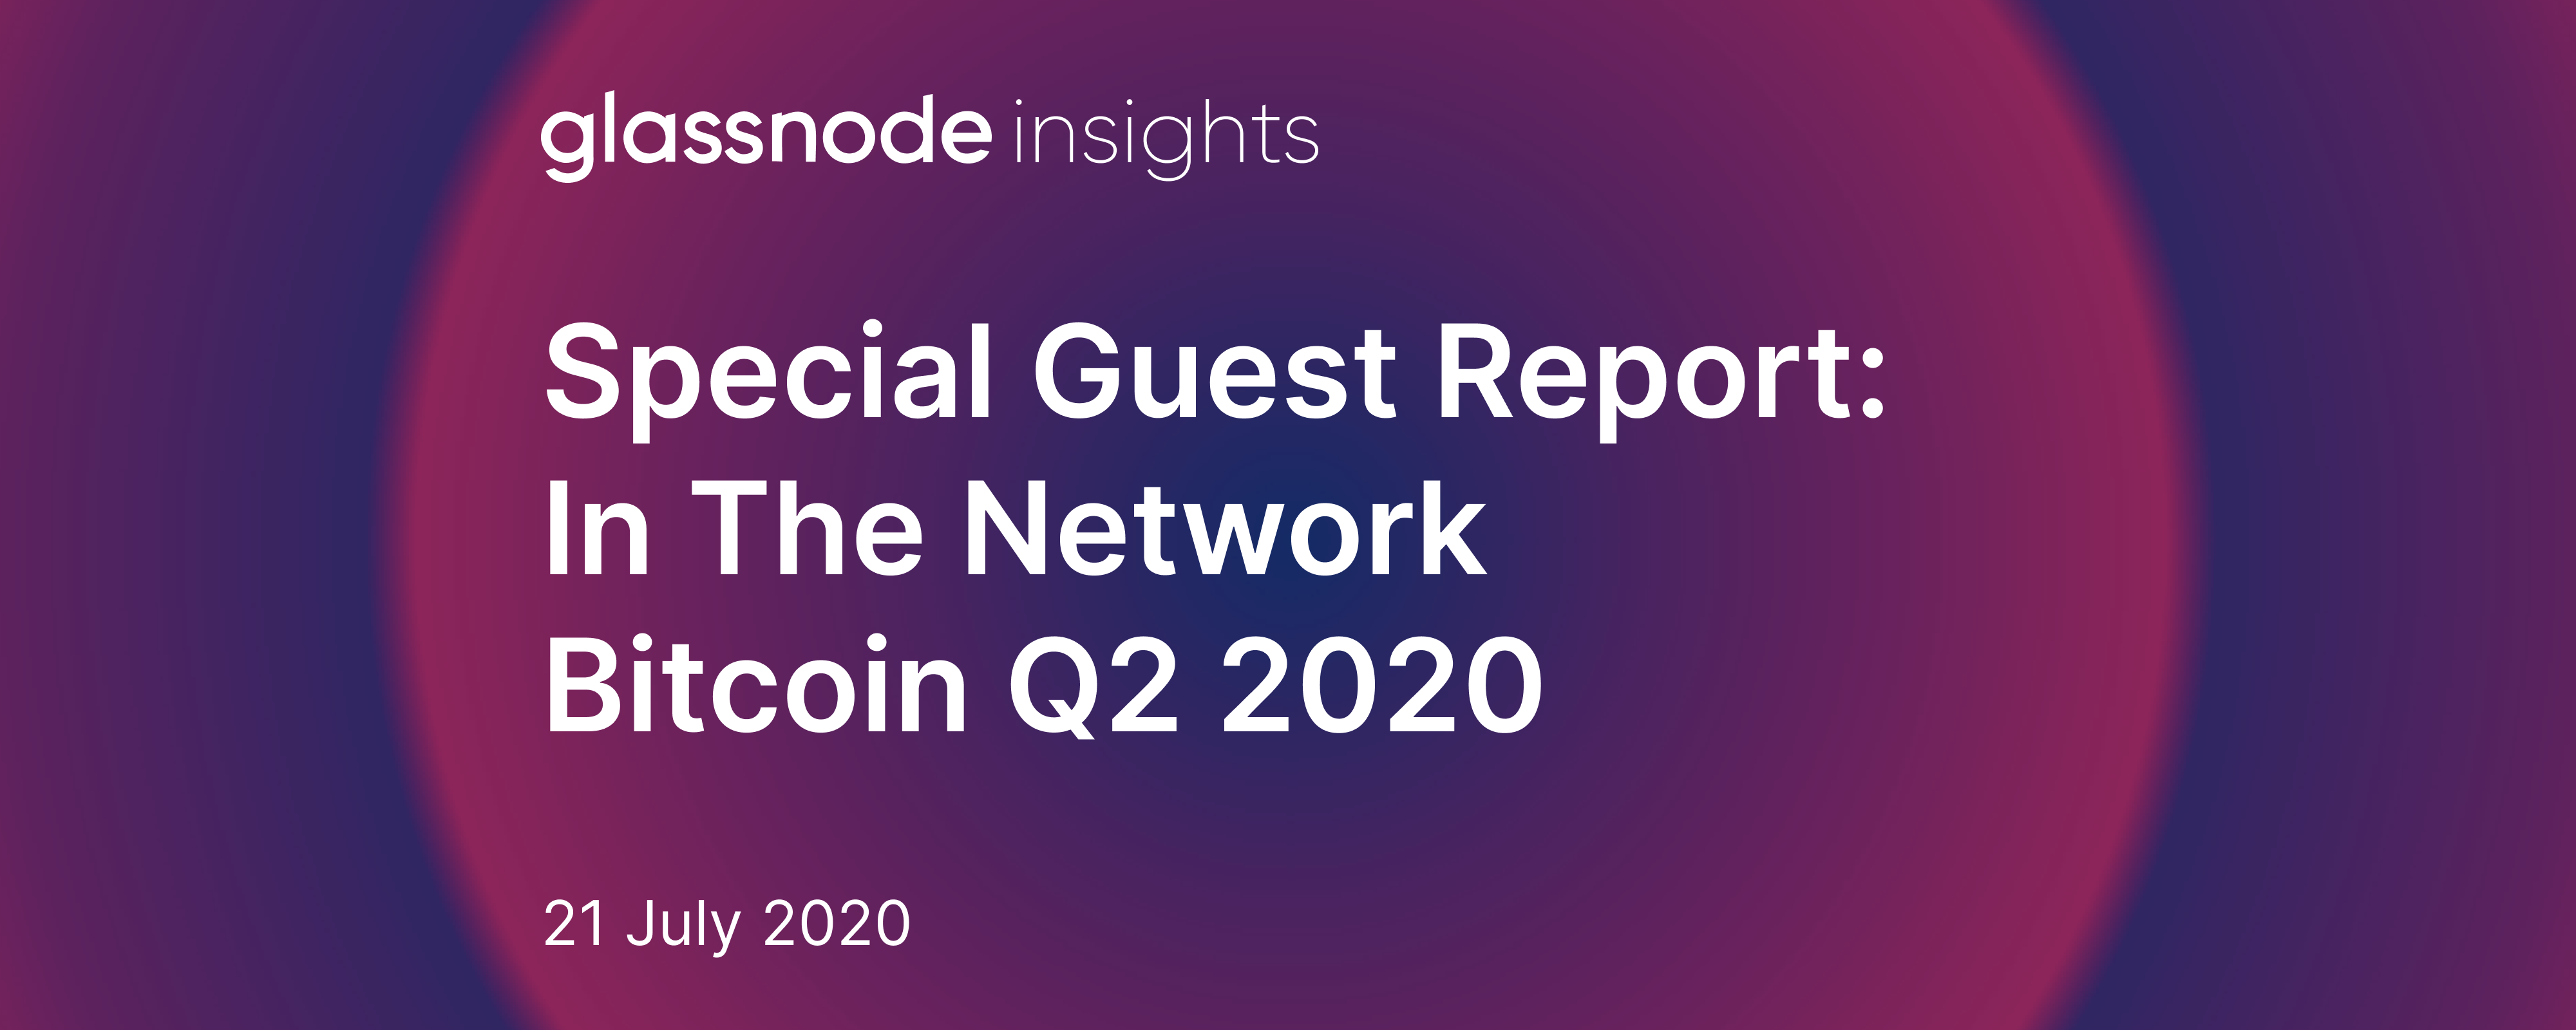 Special Guest Report: In The Network (Bitcoin Q2 2020)